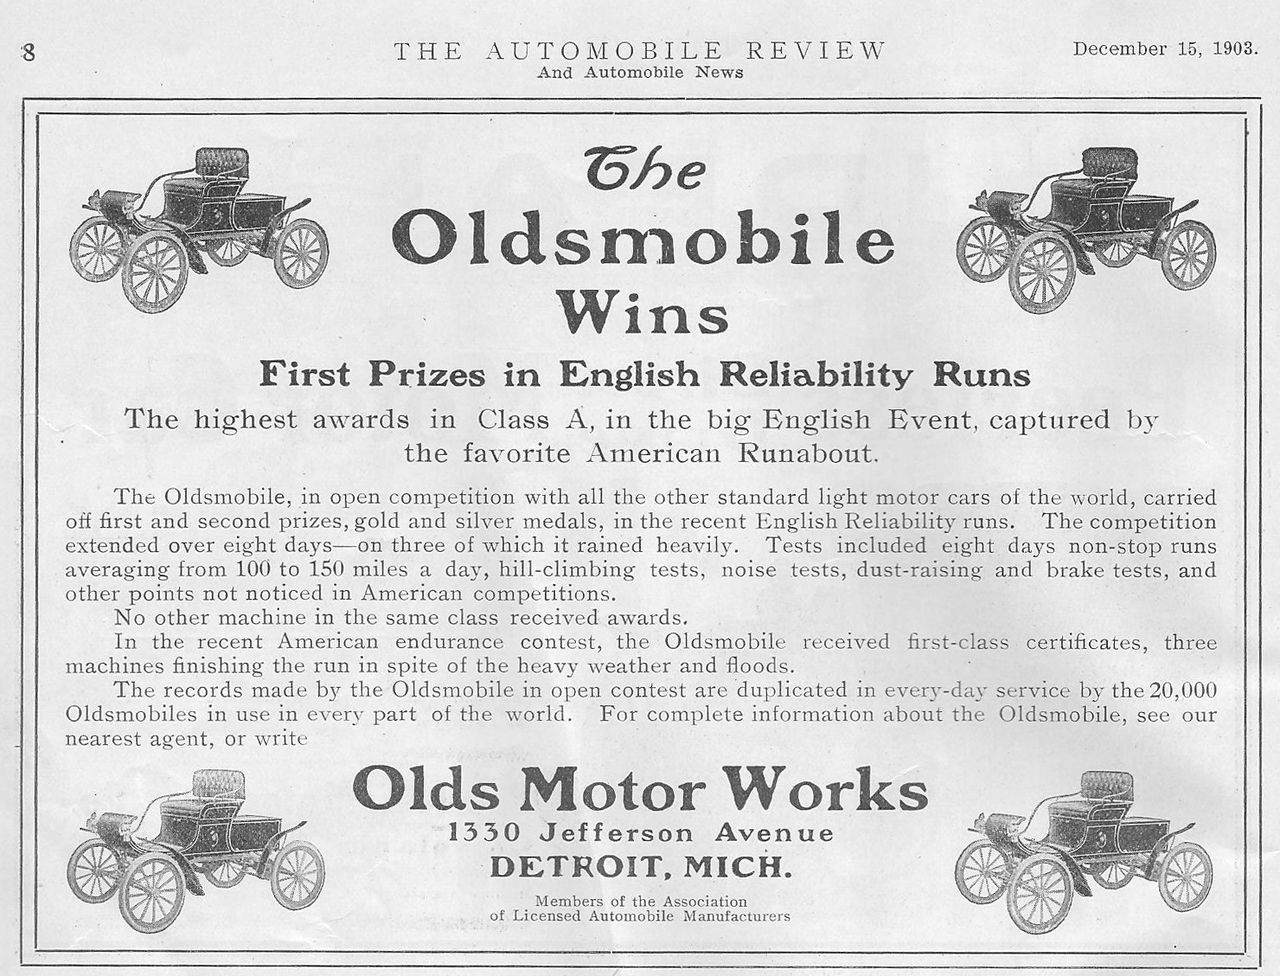 1901 : R. E. Olds Moves His Automobile Factory to Lansing